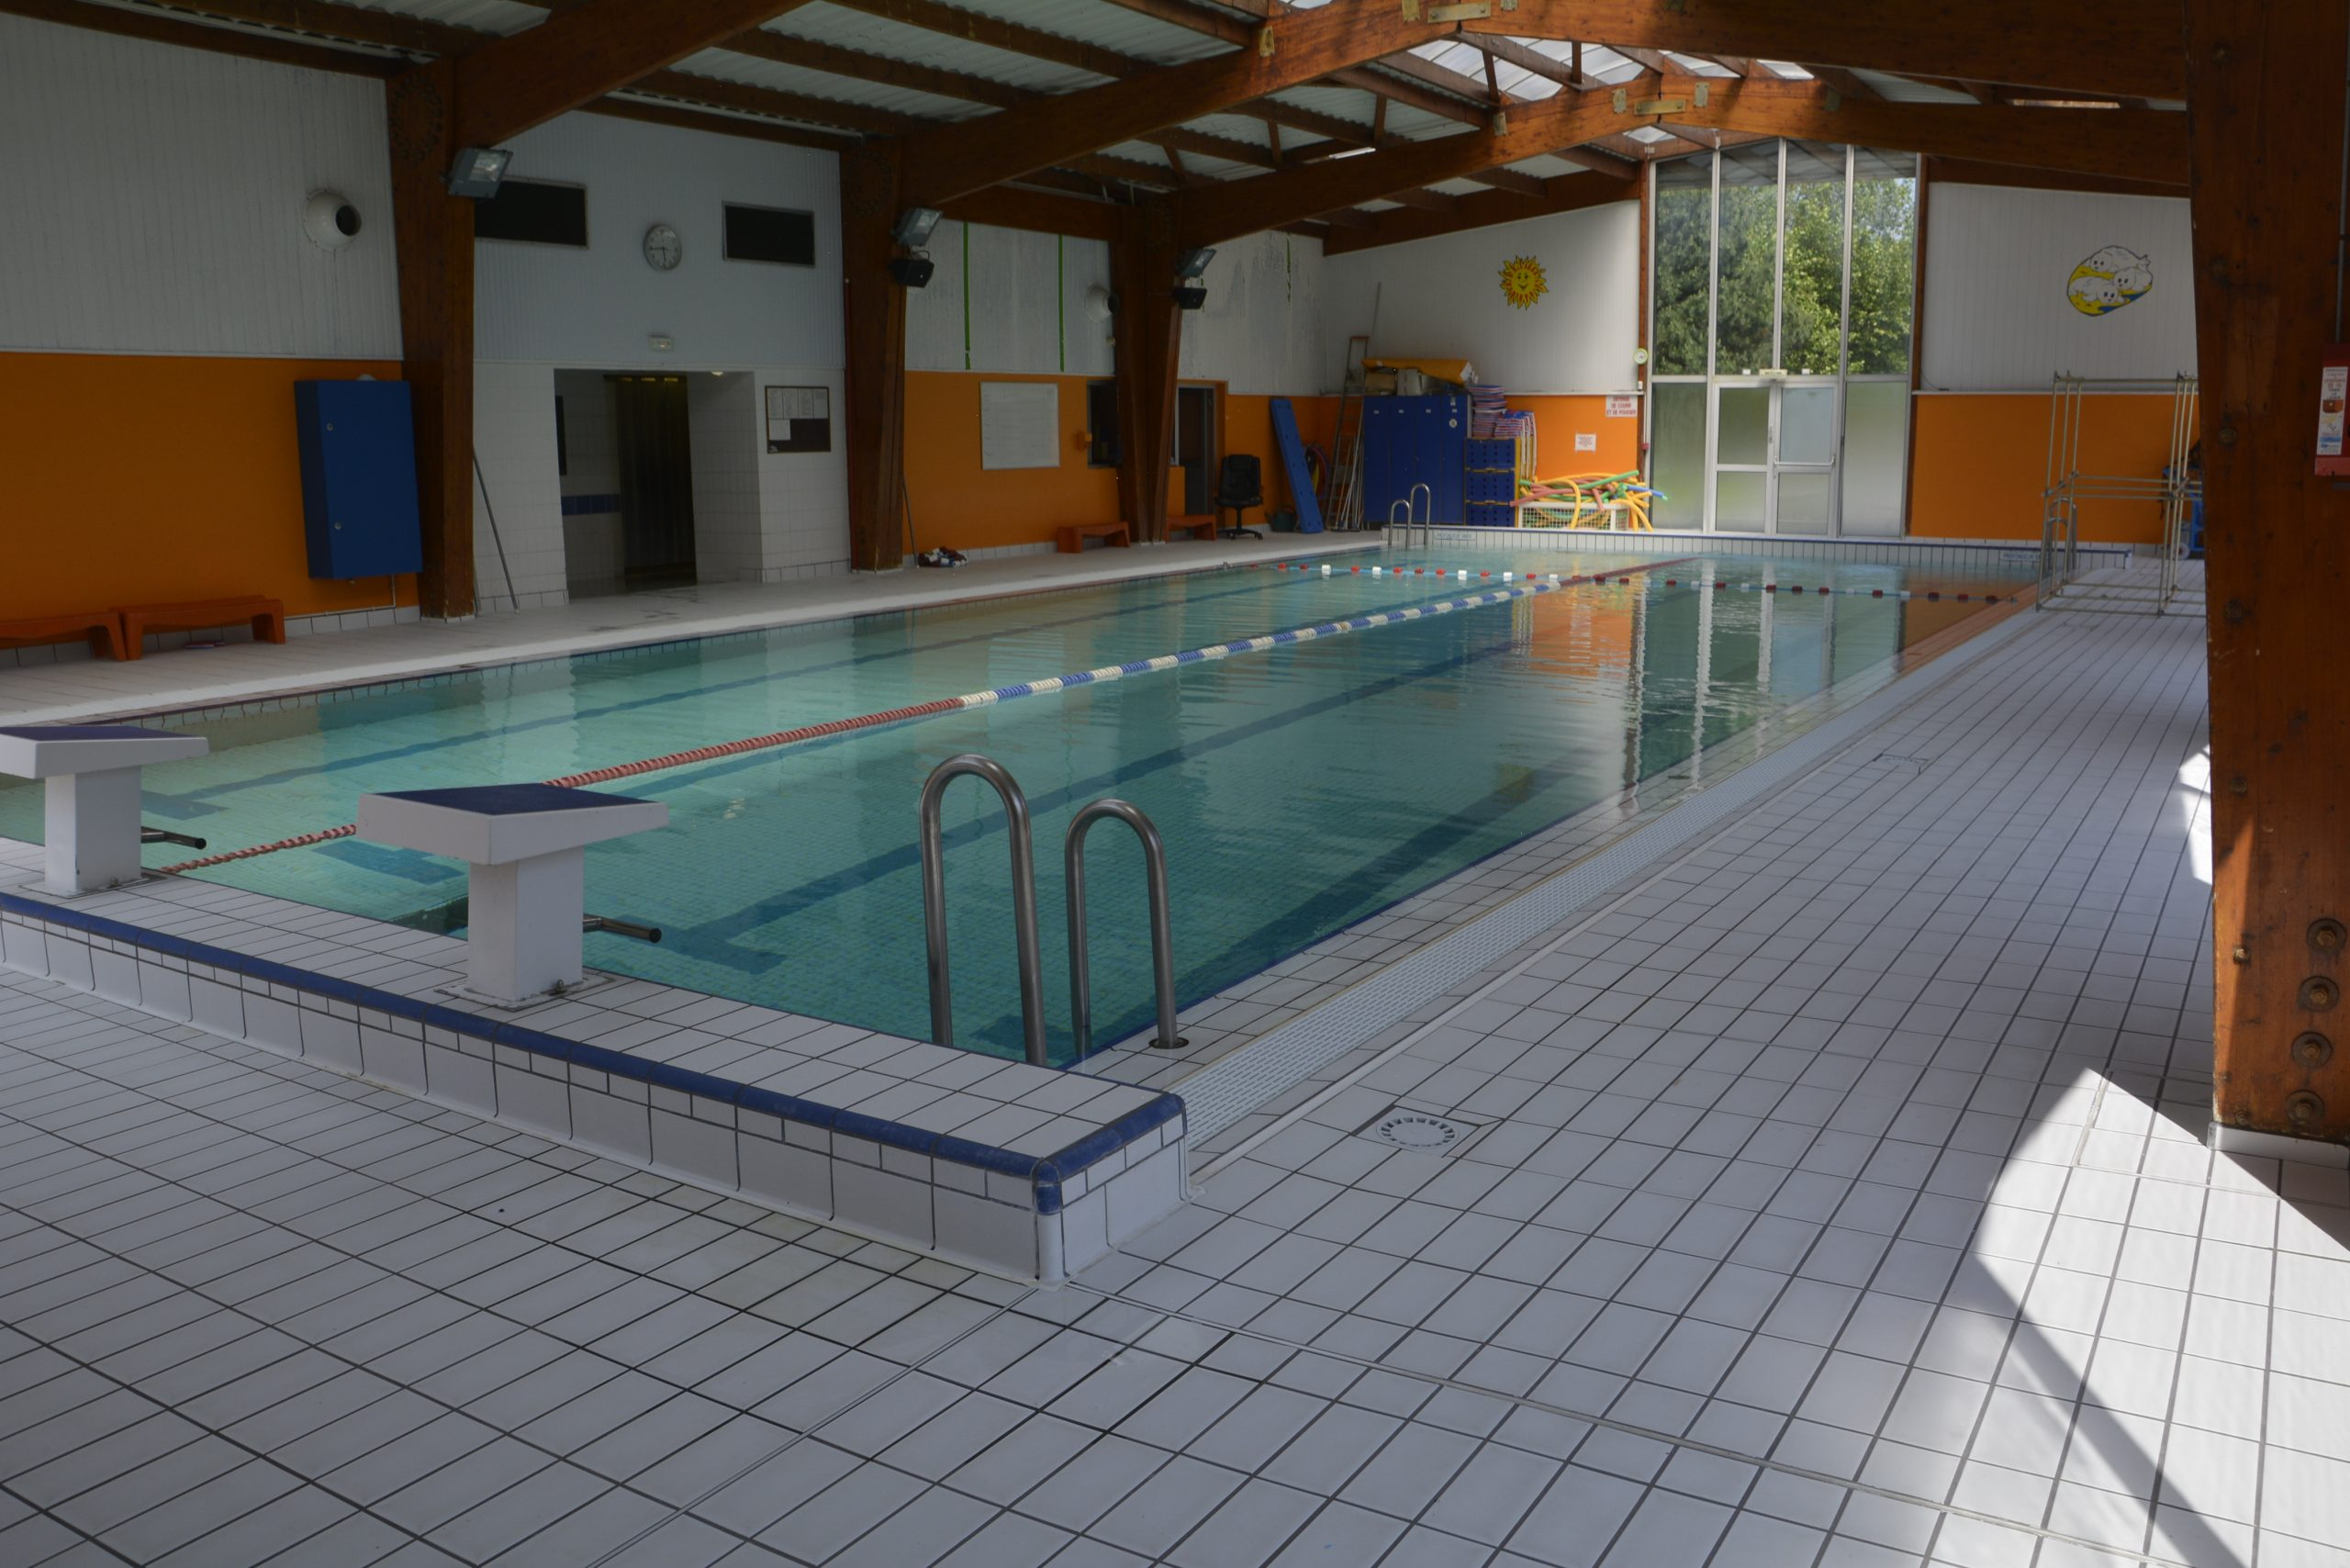 Piscine Municipale Louis Aragon – Billy-Montigny tout Horaire Piscine Ronchin